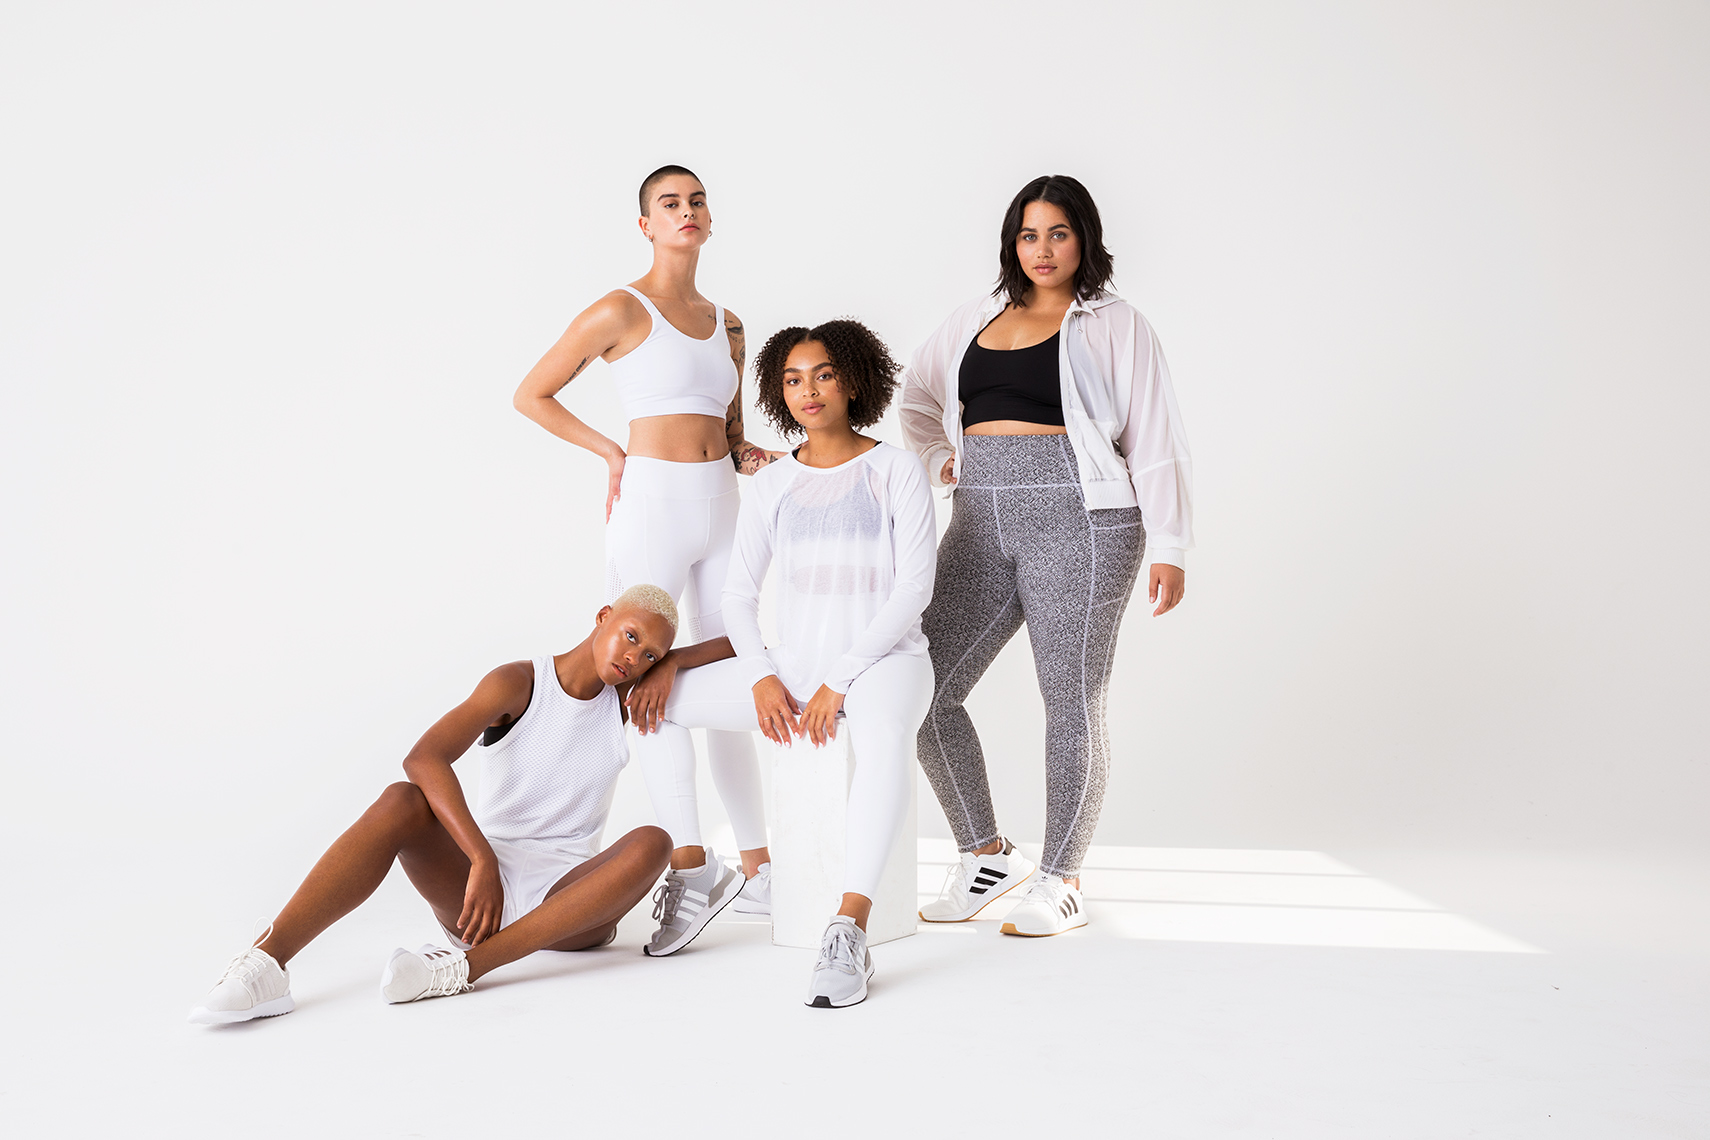 Portrait of a group of diverse models white in activewear on white background